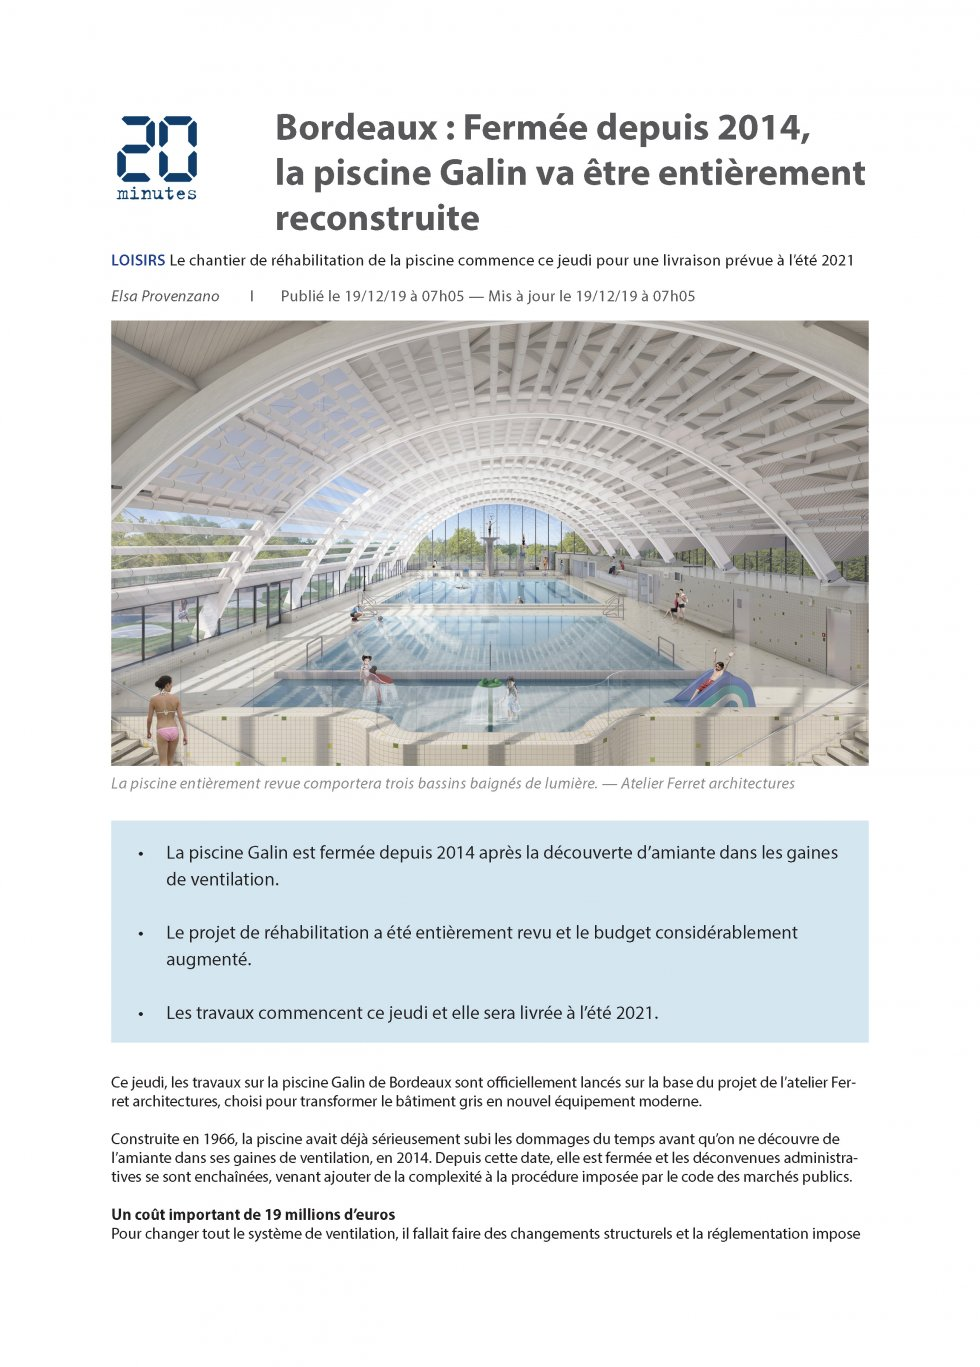 Bordeaux: Closed since 2014, the Galin swimming pool will be completely rebuilt